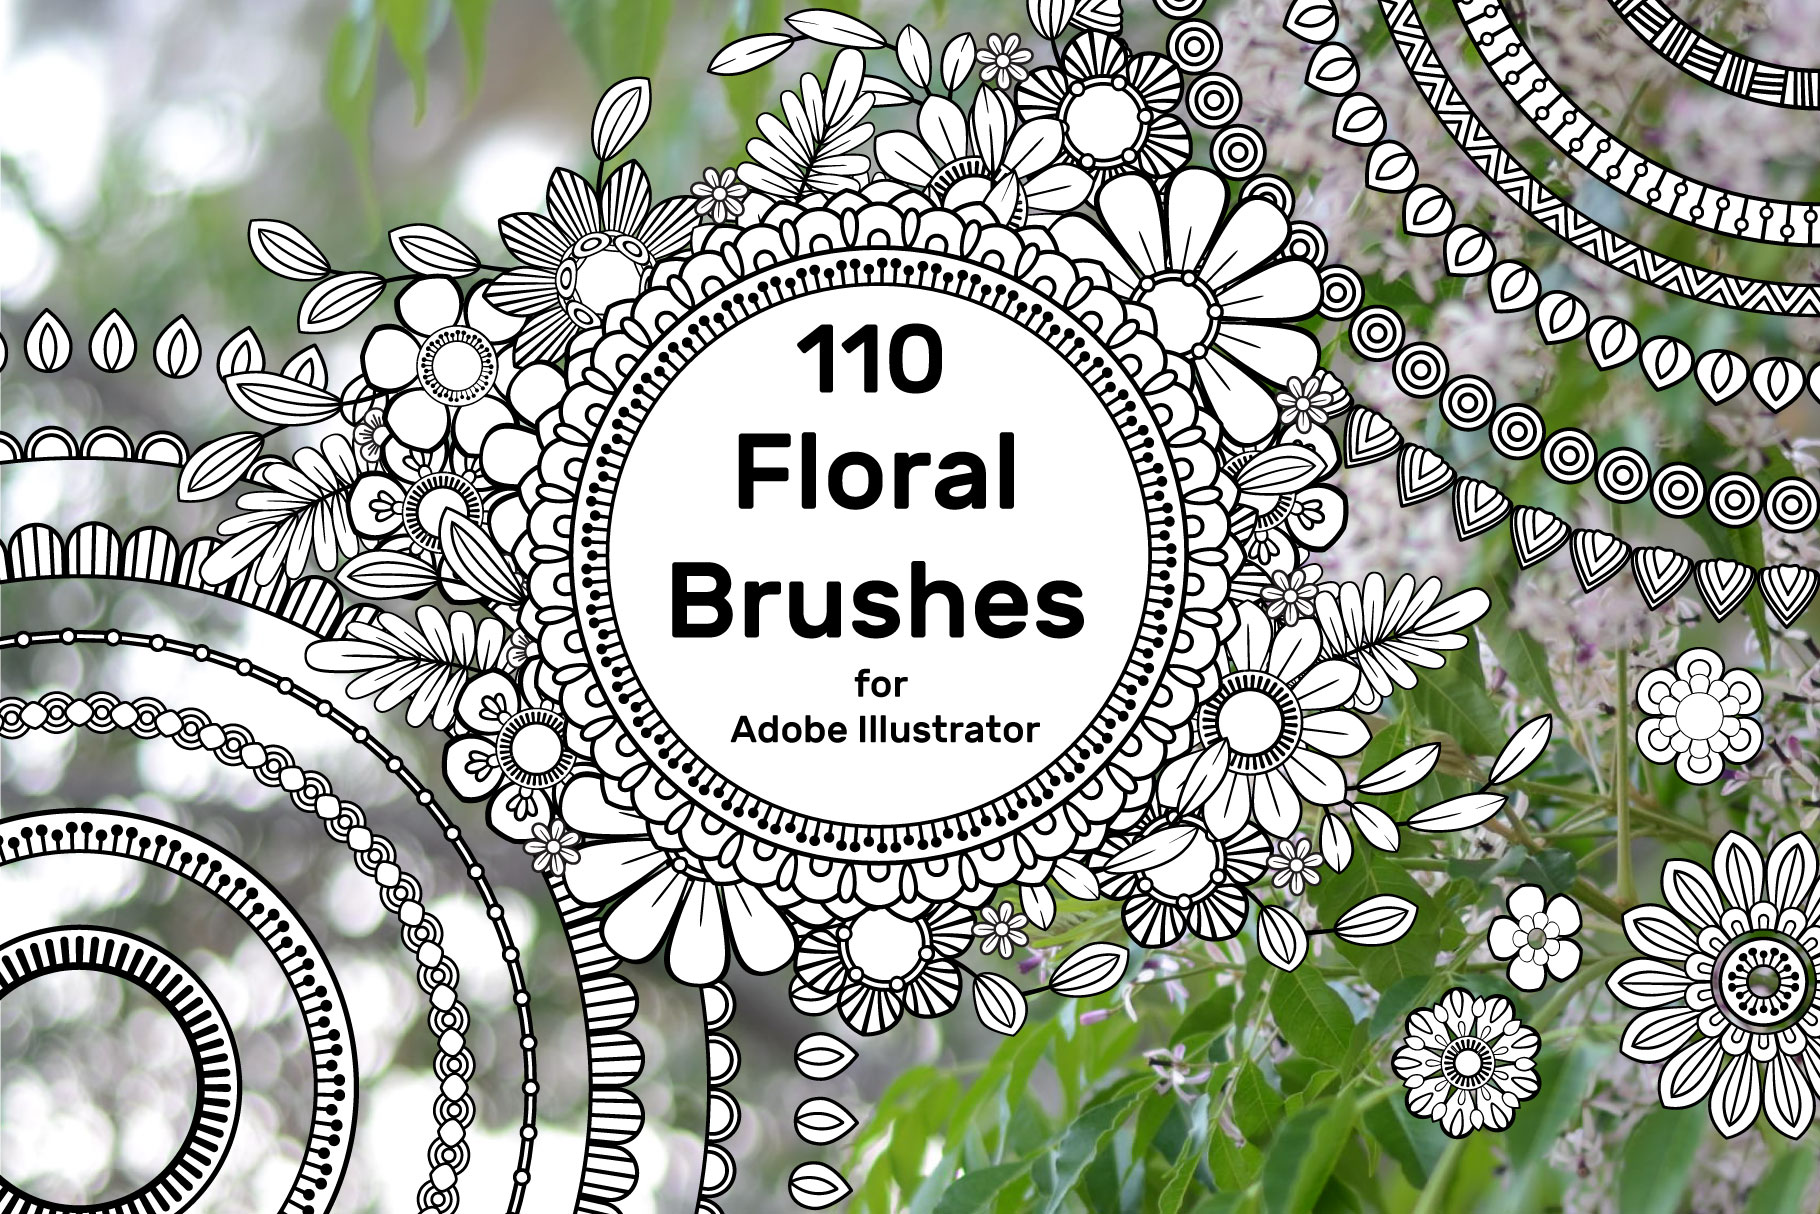 110 Floral Brushes for Adobe Illustrator example image 1